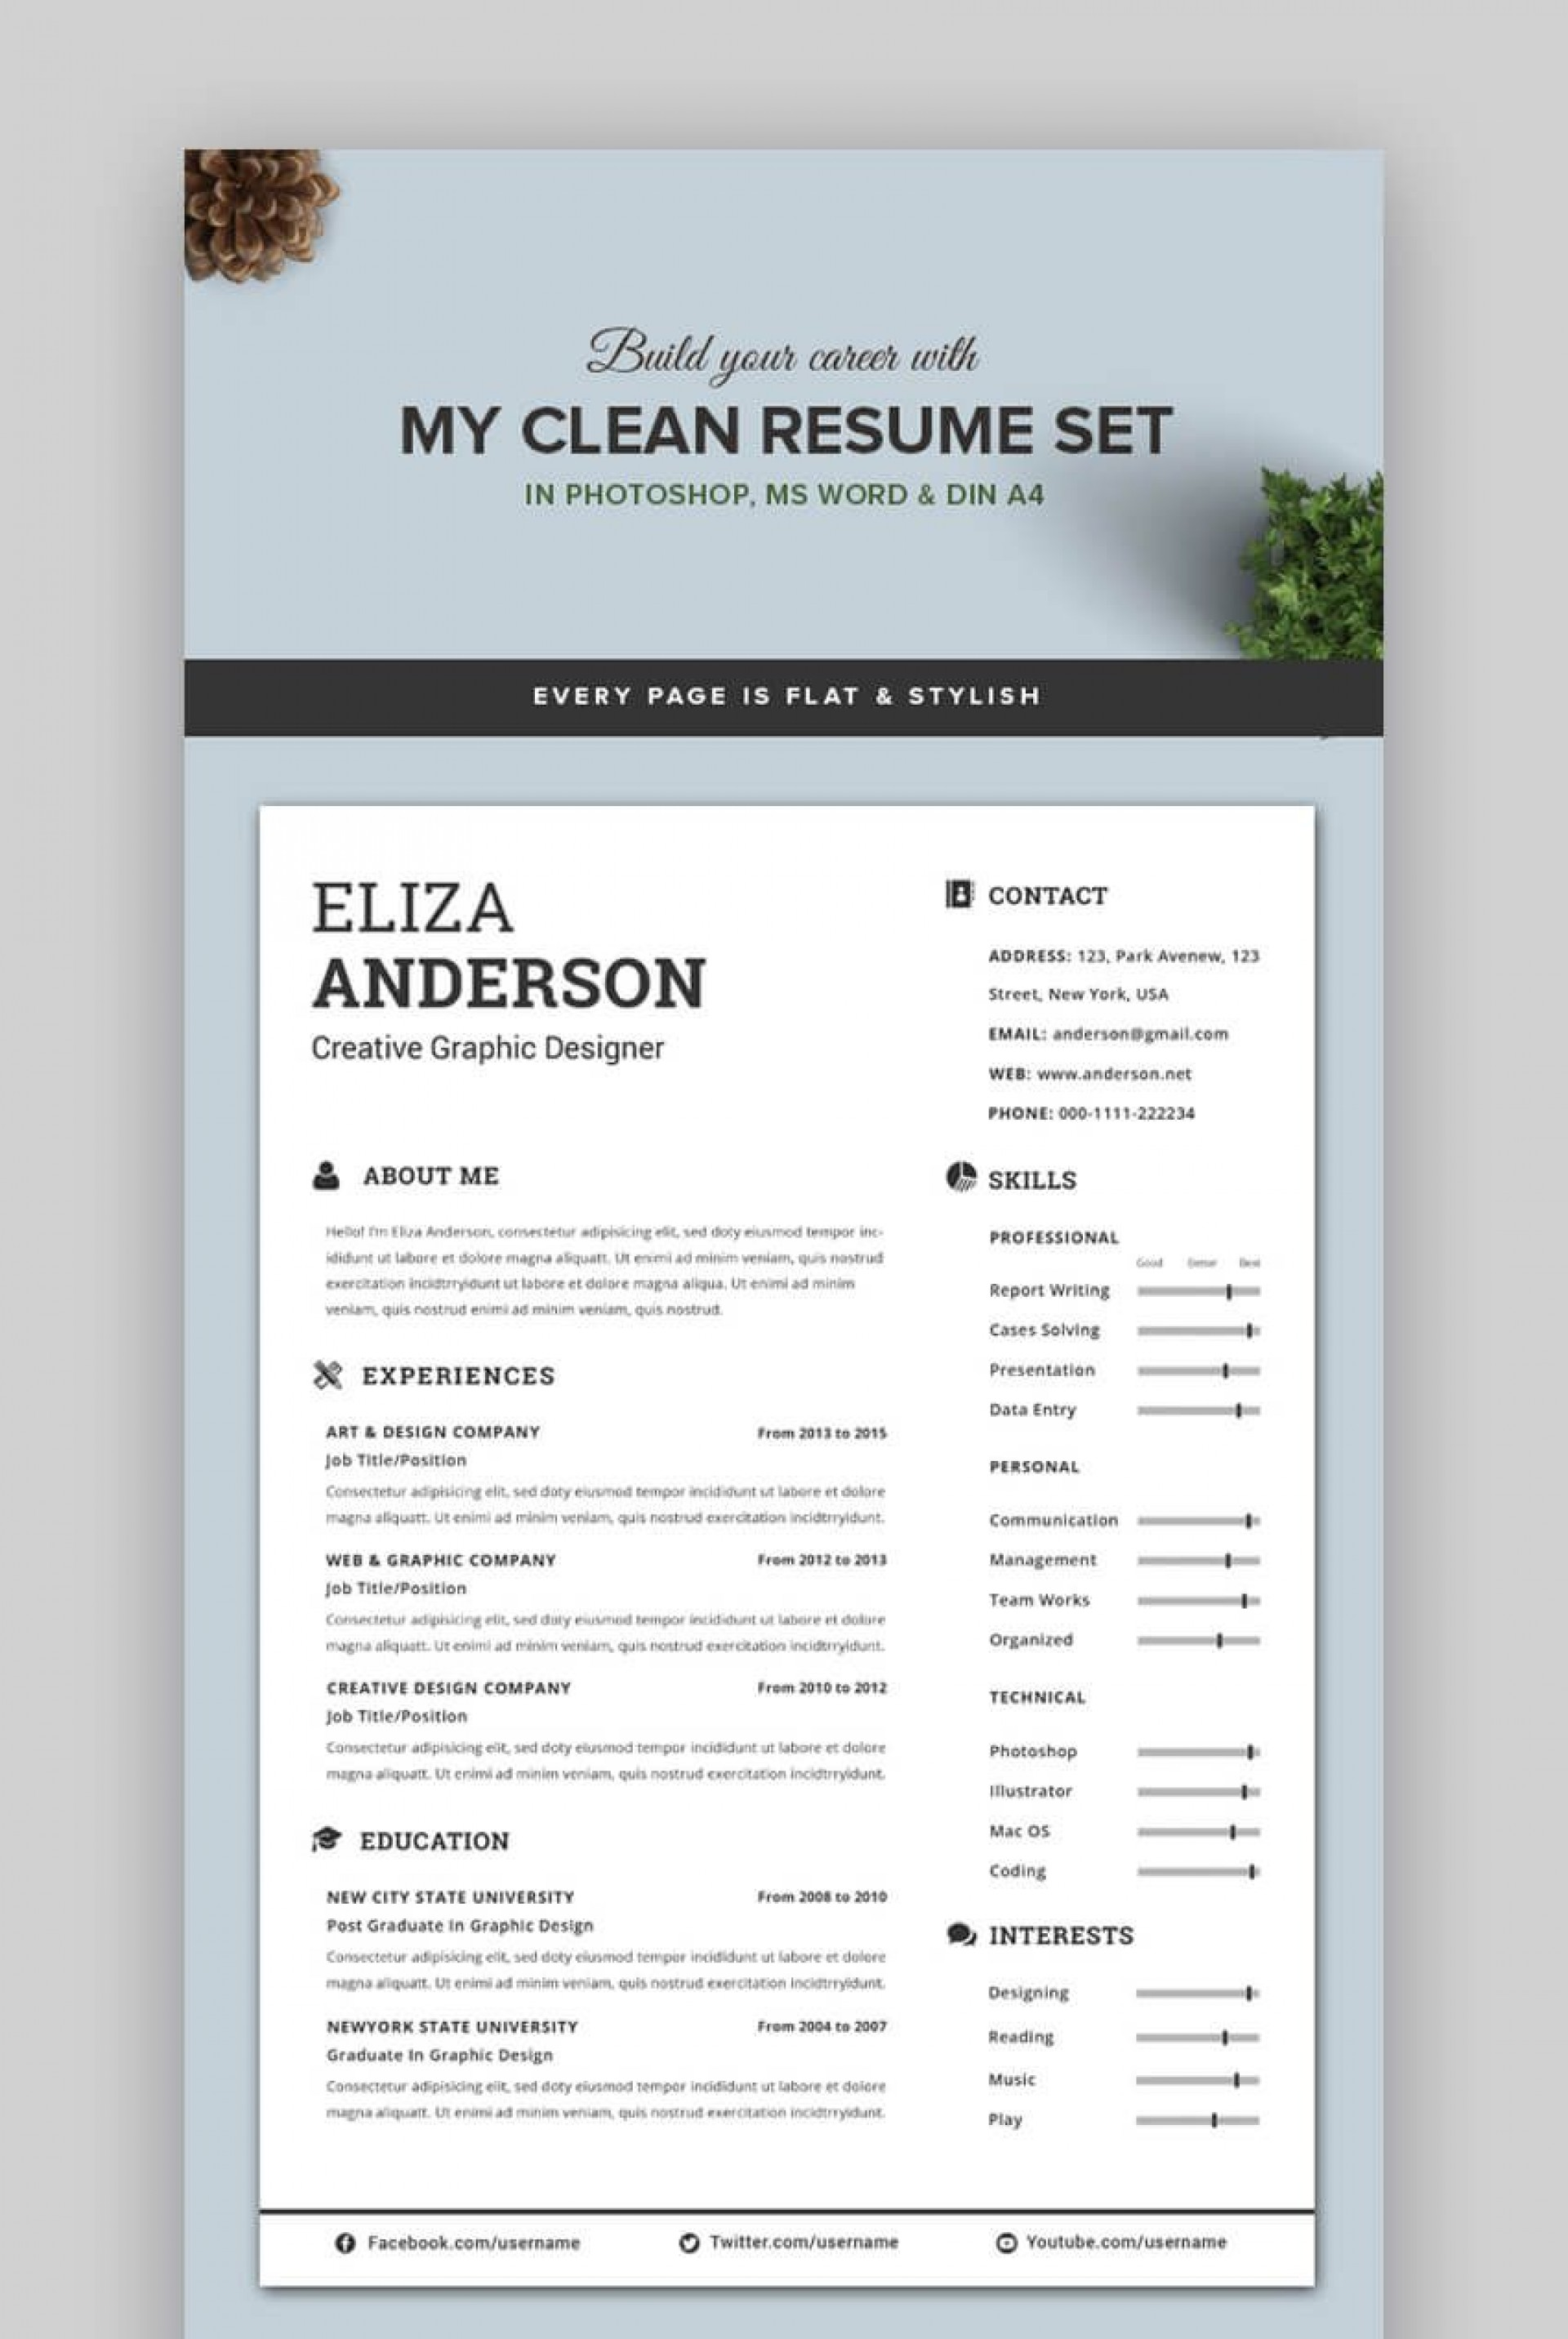 006 Singular Eye Catching Resume Template Highest Quality  Microsoft Word Free Download Most1920